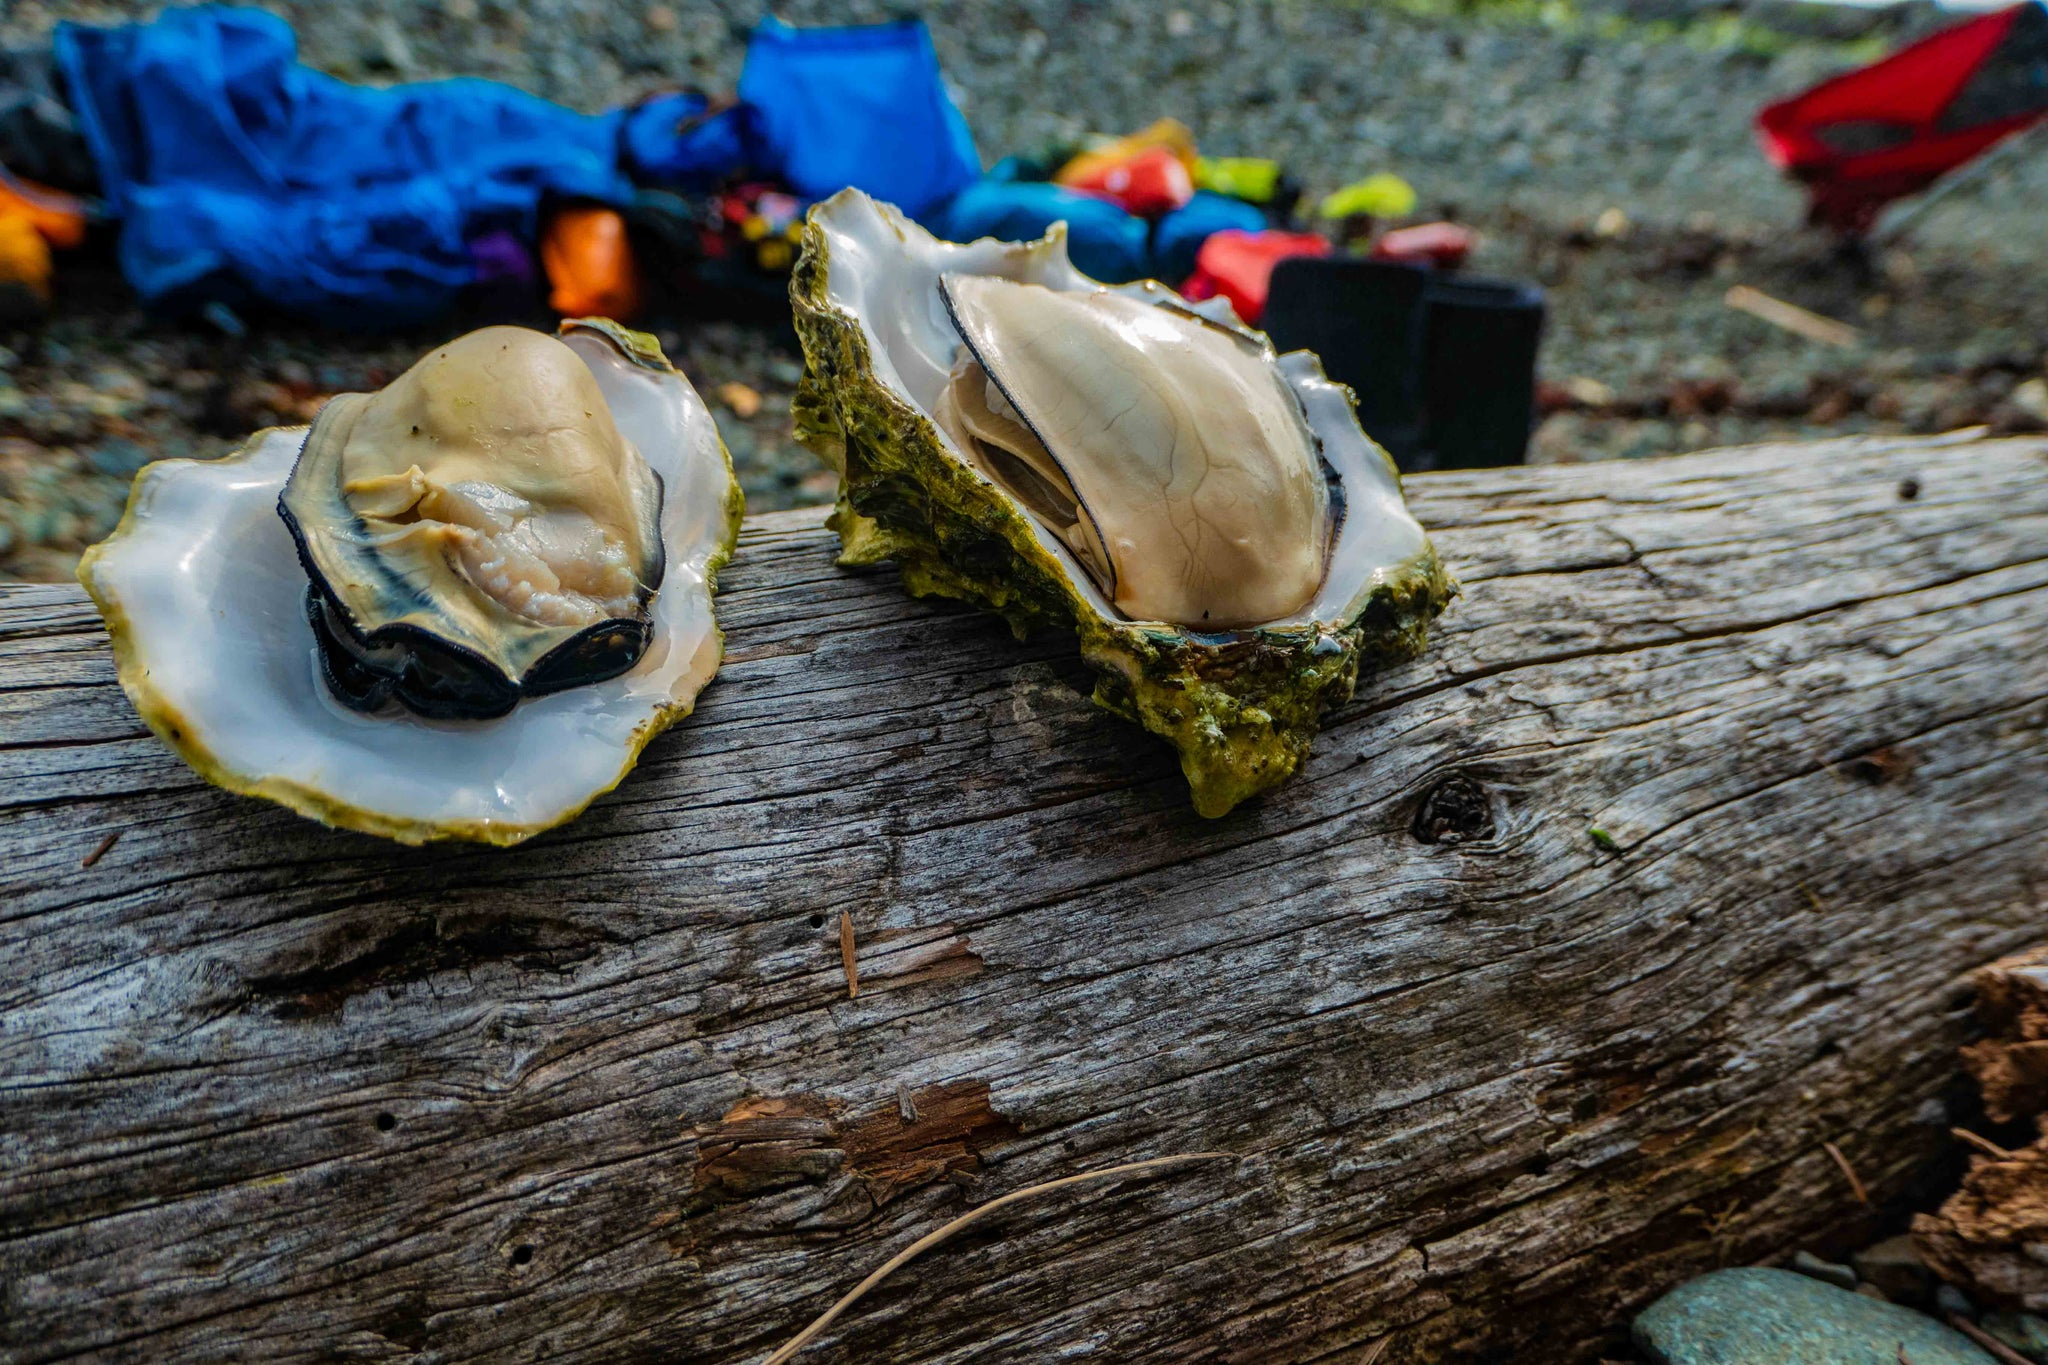 cooked oysters in their shells, on a log, ready to eat